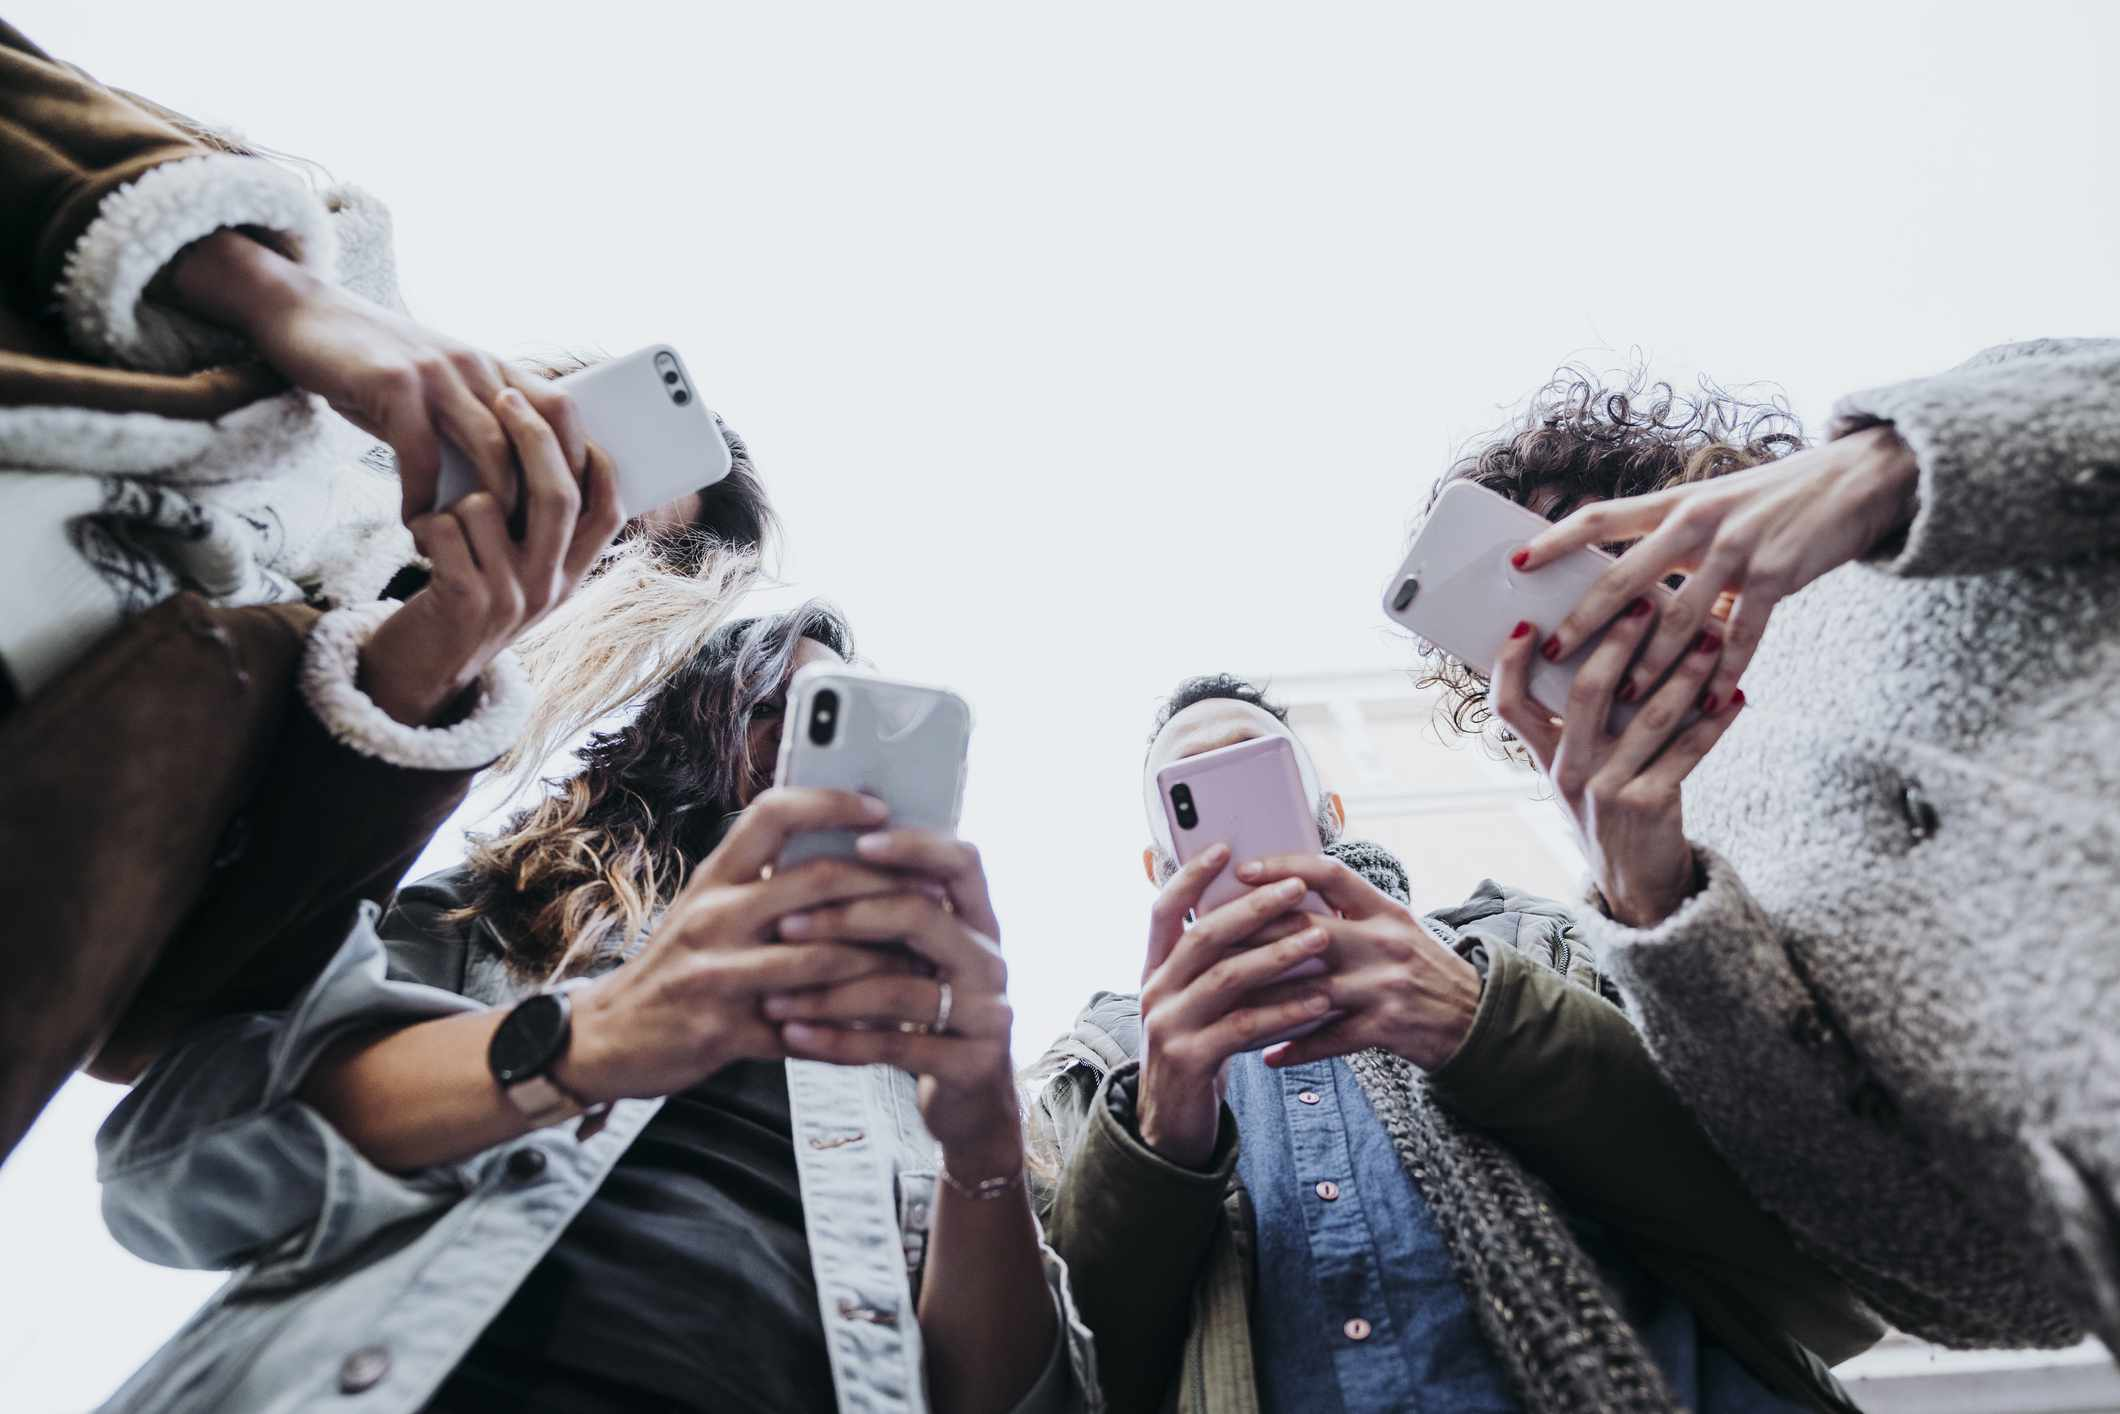 Group of friends staring at their smartphones